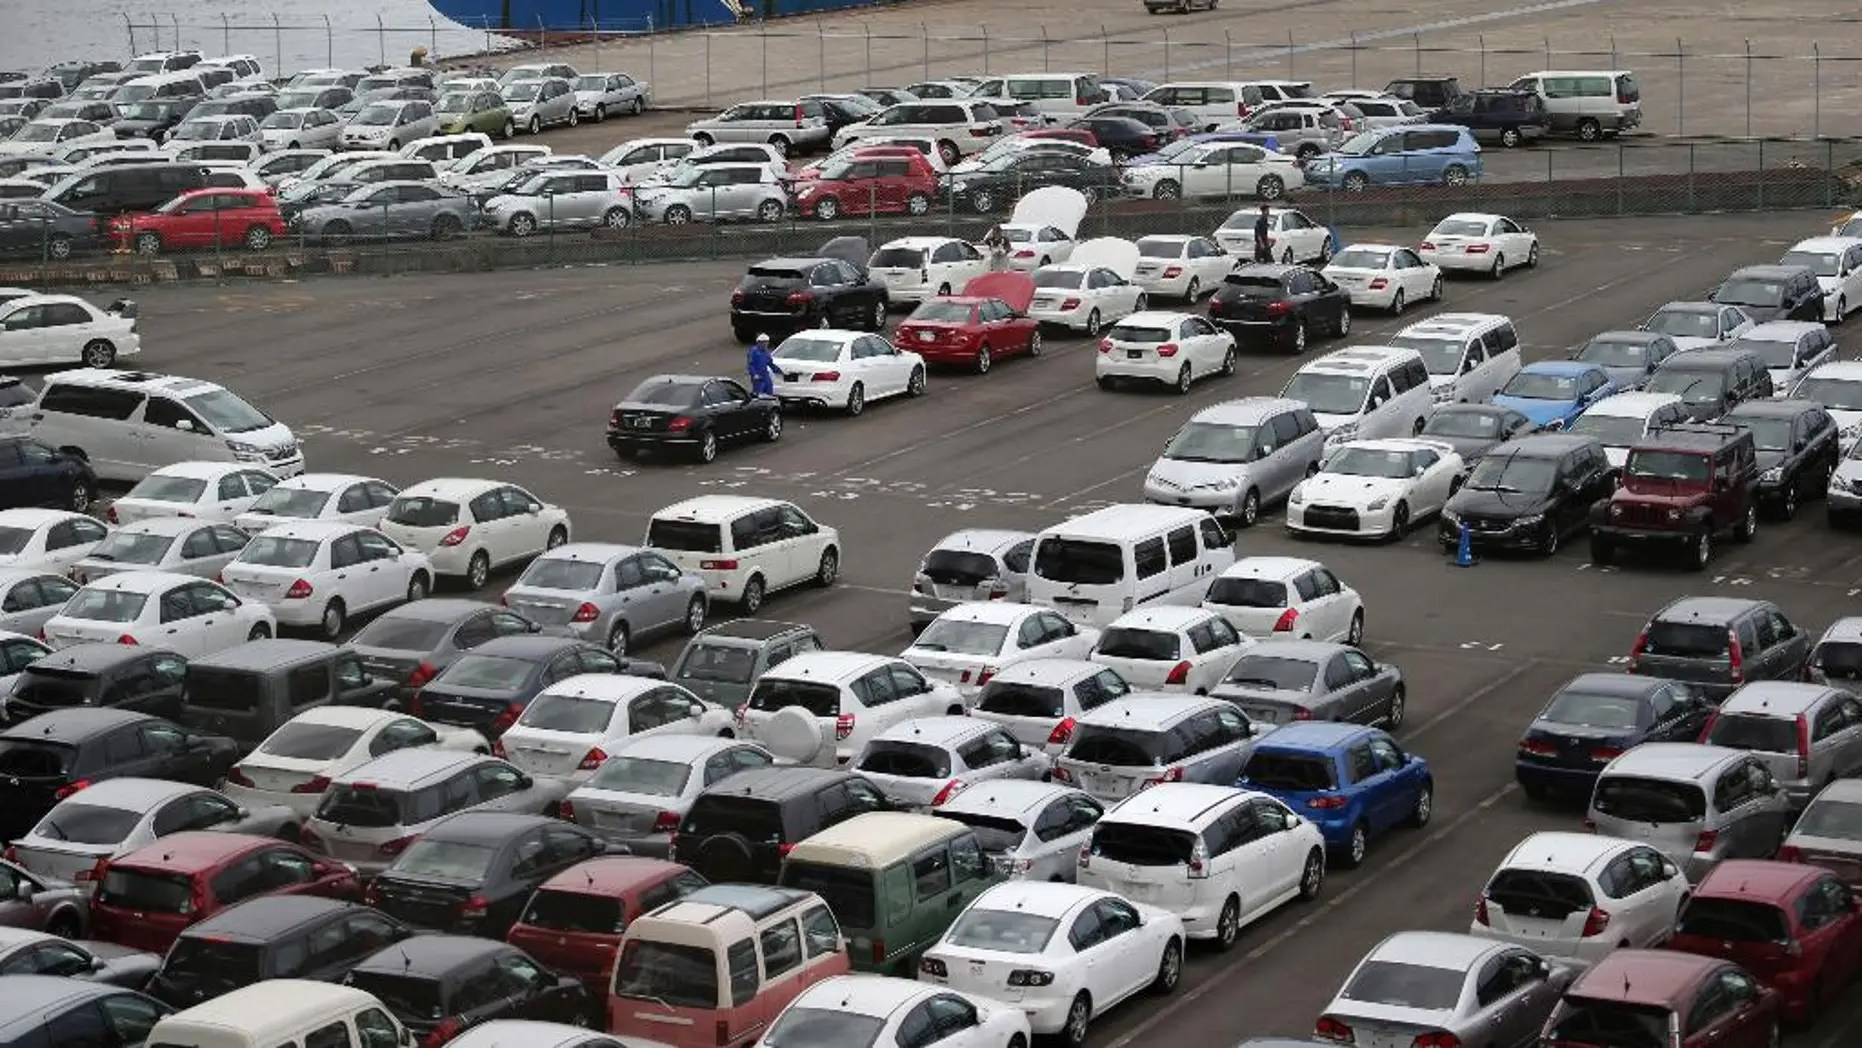 Vehicle Manufacturers In Japan Japan Business Outlook Brightens Though Improvement Modest